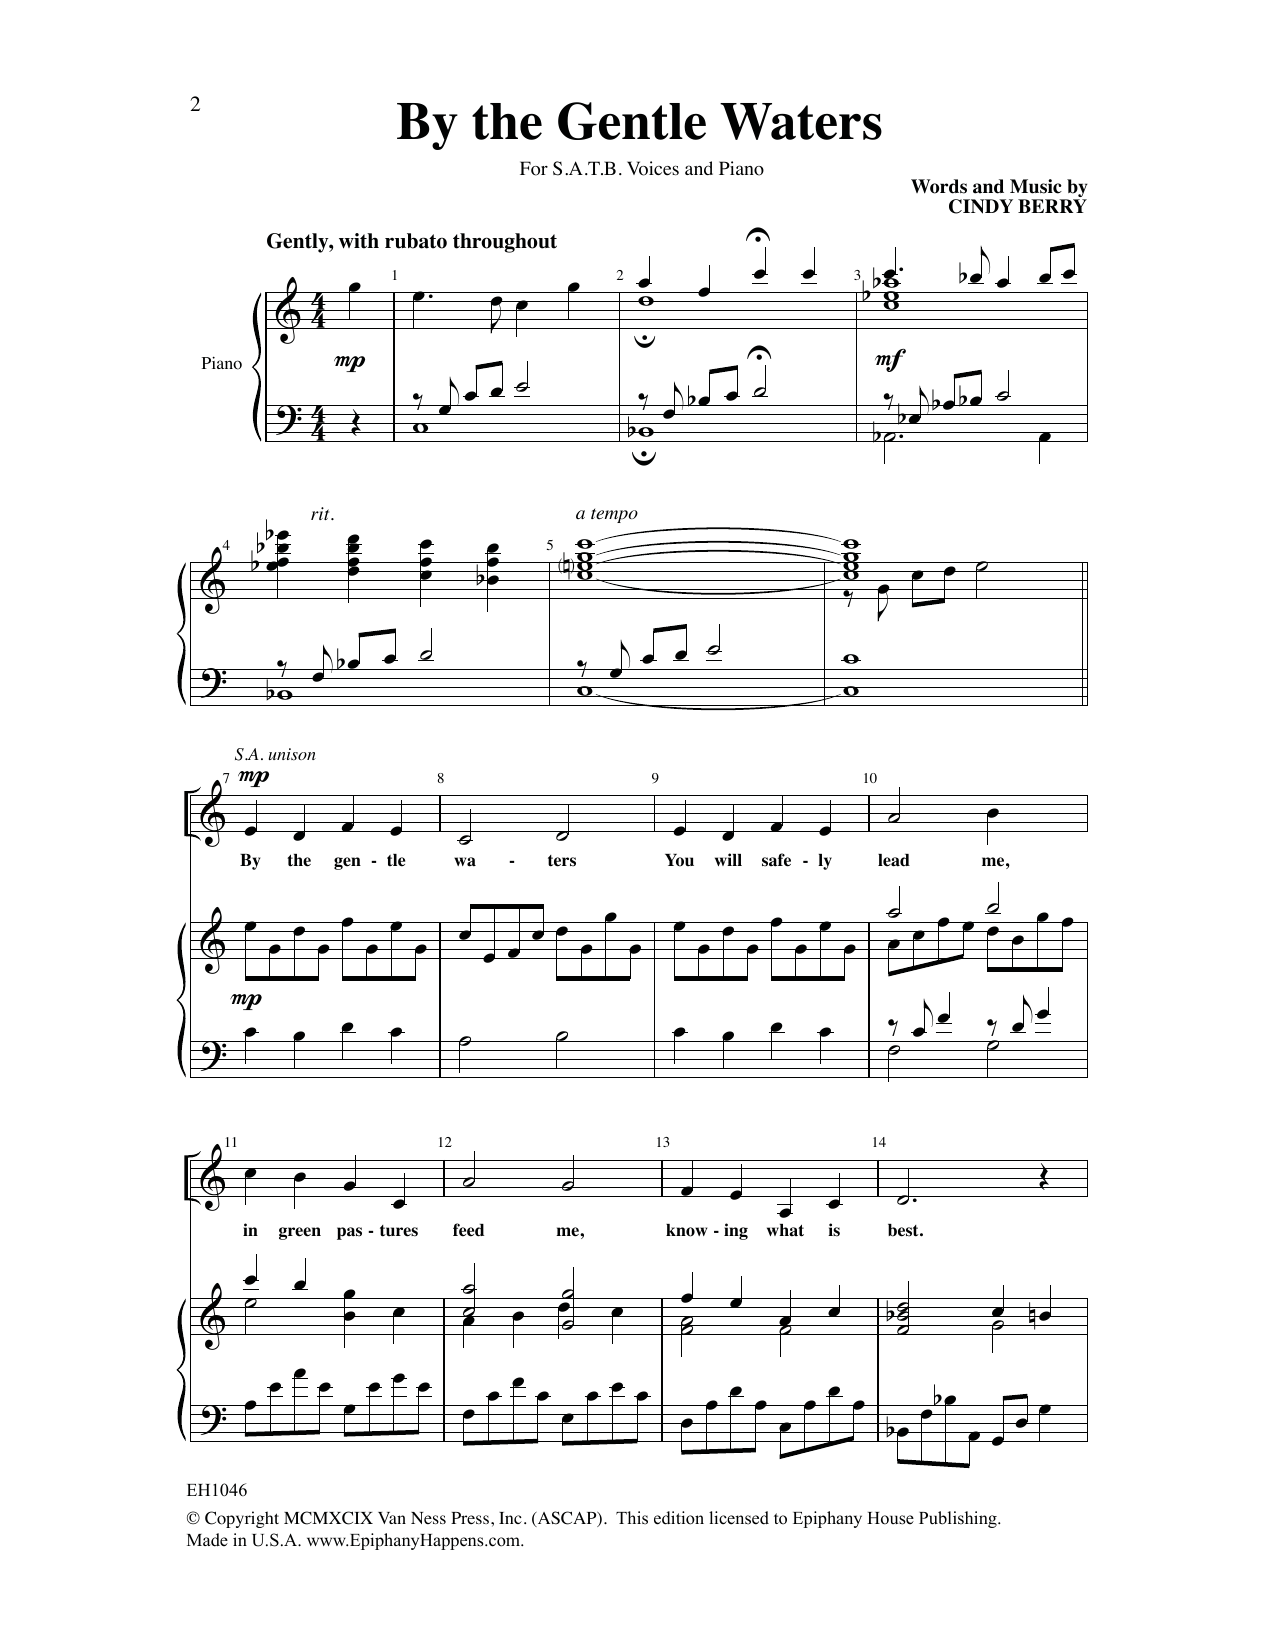 O holy night sheet music at stantons sheet music other suggestions hexwebz Image collections